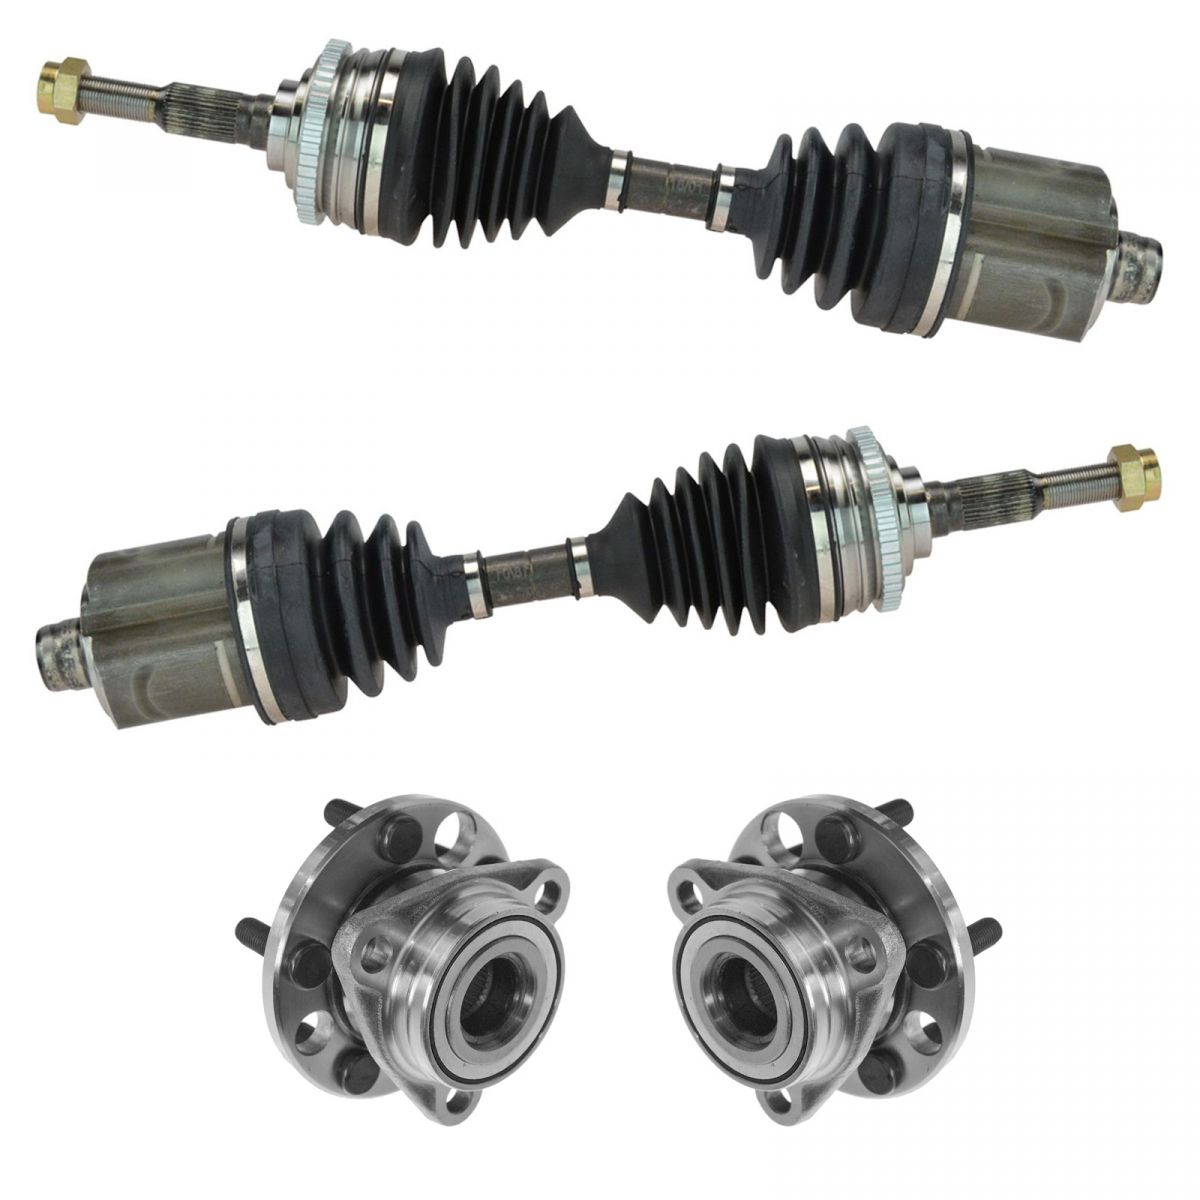 Front Driver Side CV Axle Shaft For  CAVALIER Automatic Transmission 4 speed